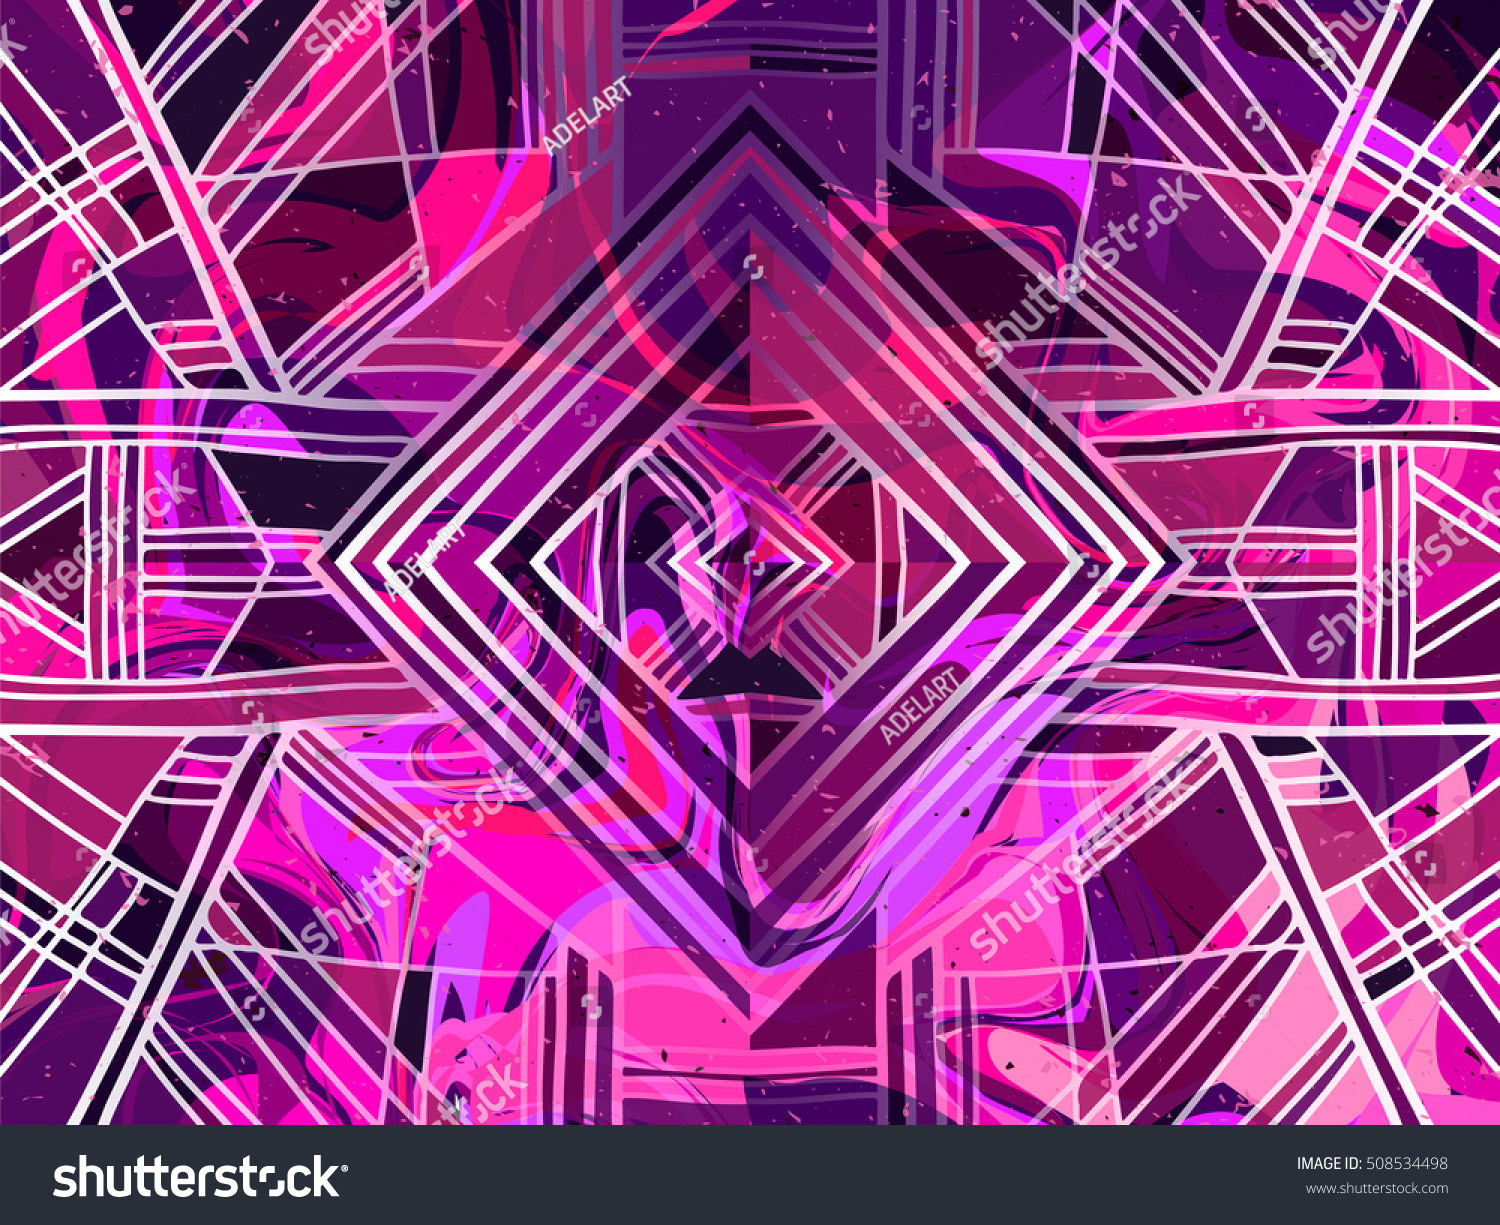 Most Inspiring Wallpaper Marble Neon - stock-vector-background-abstract-marble-ethnic-oranament-wallpaper-geometric-backdrop-with-marble-effect-508534498  Perfect Image Reference_628668.jpg